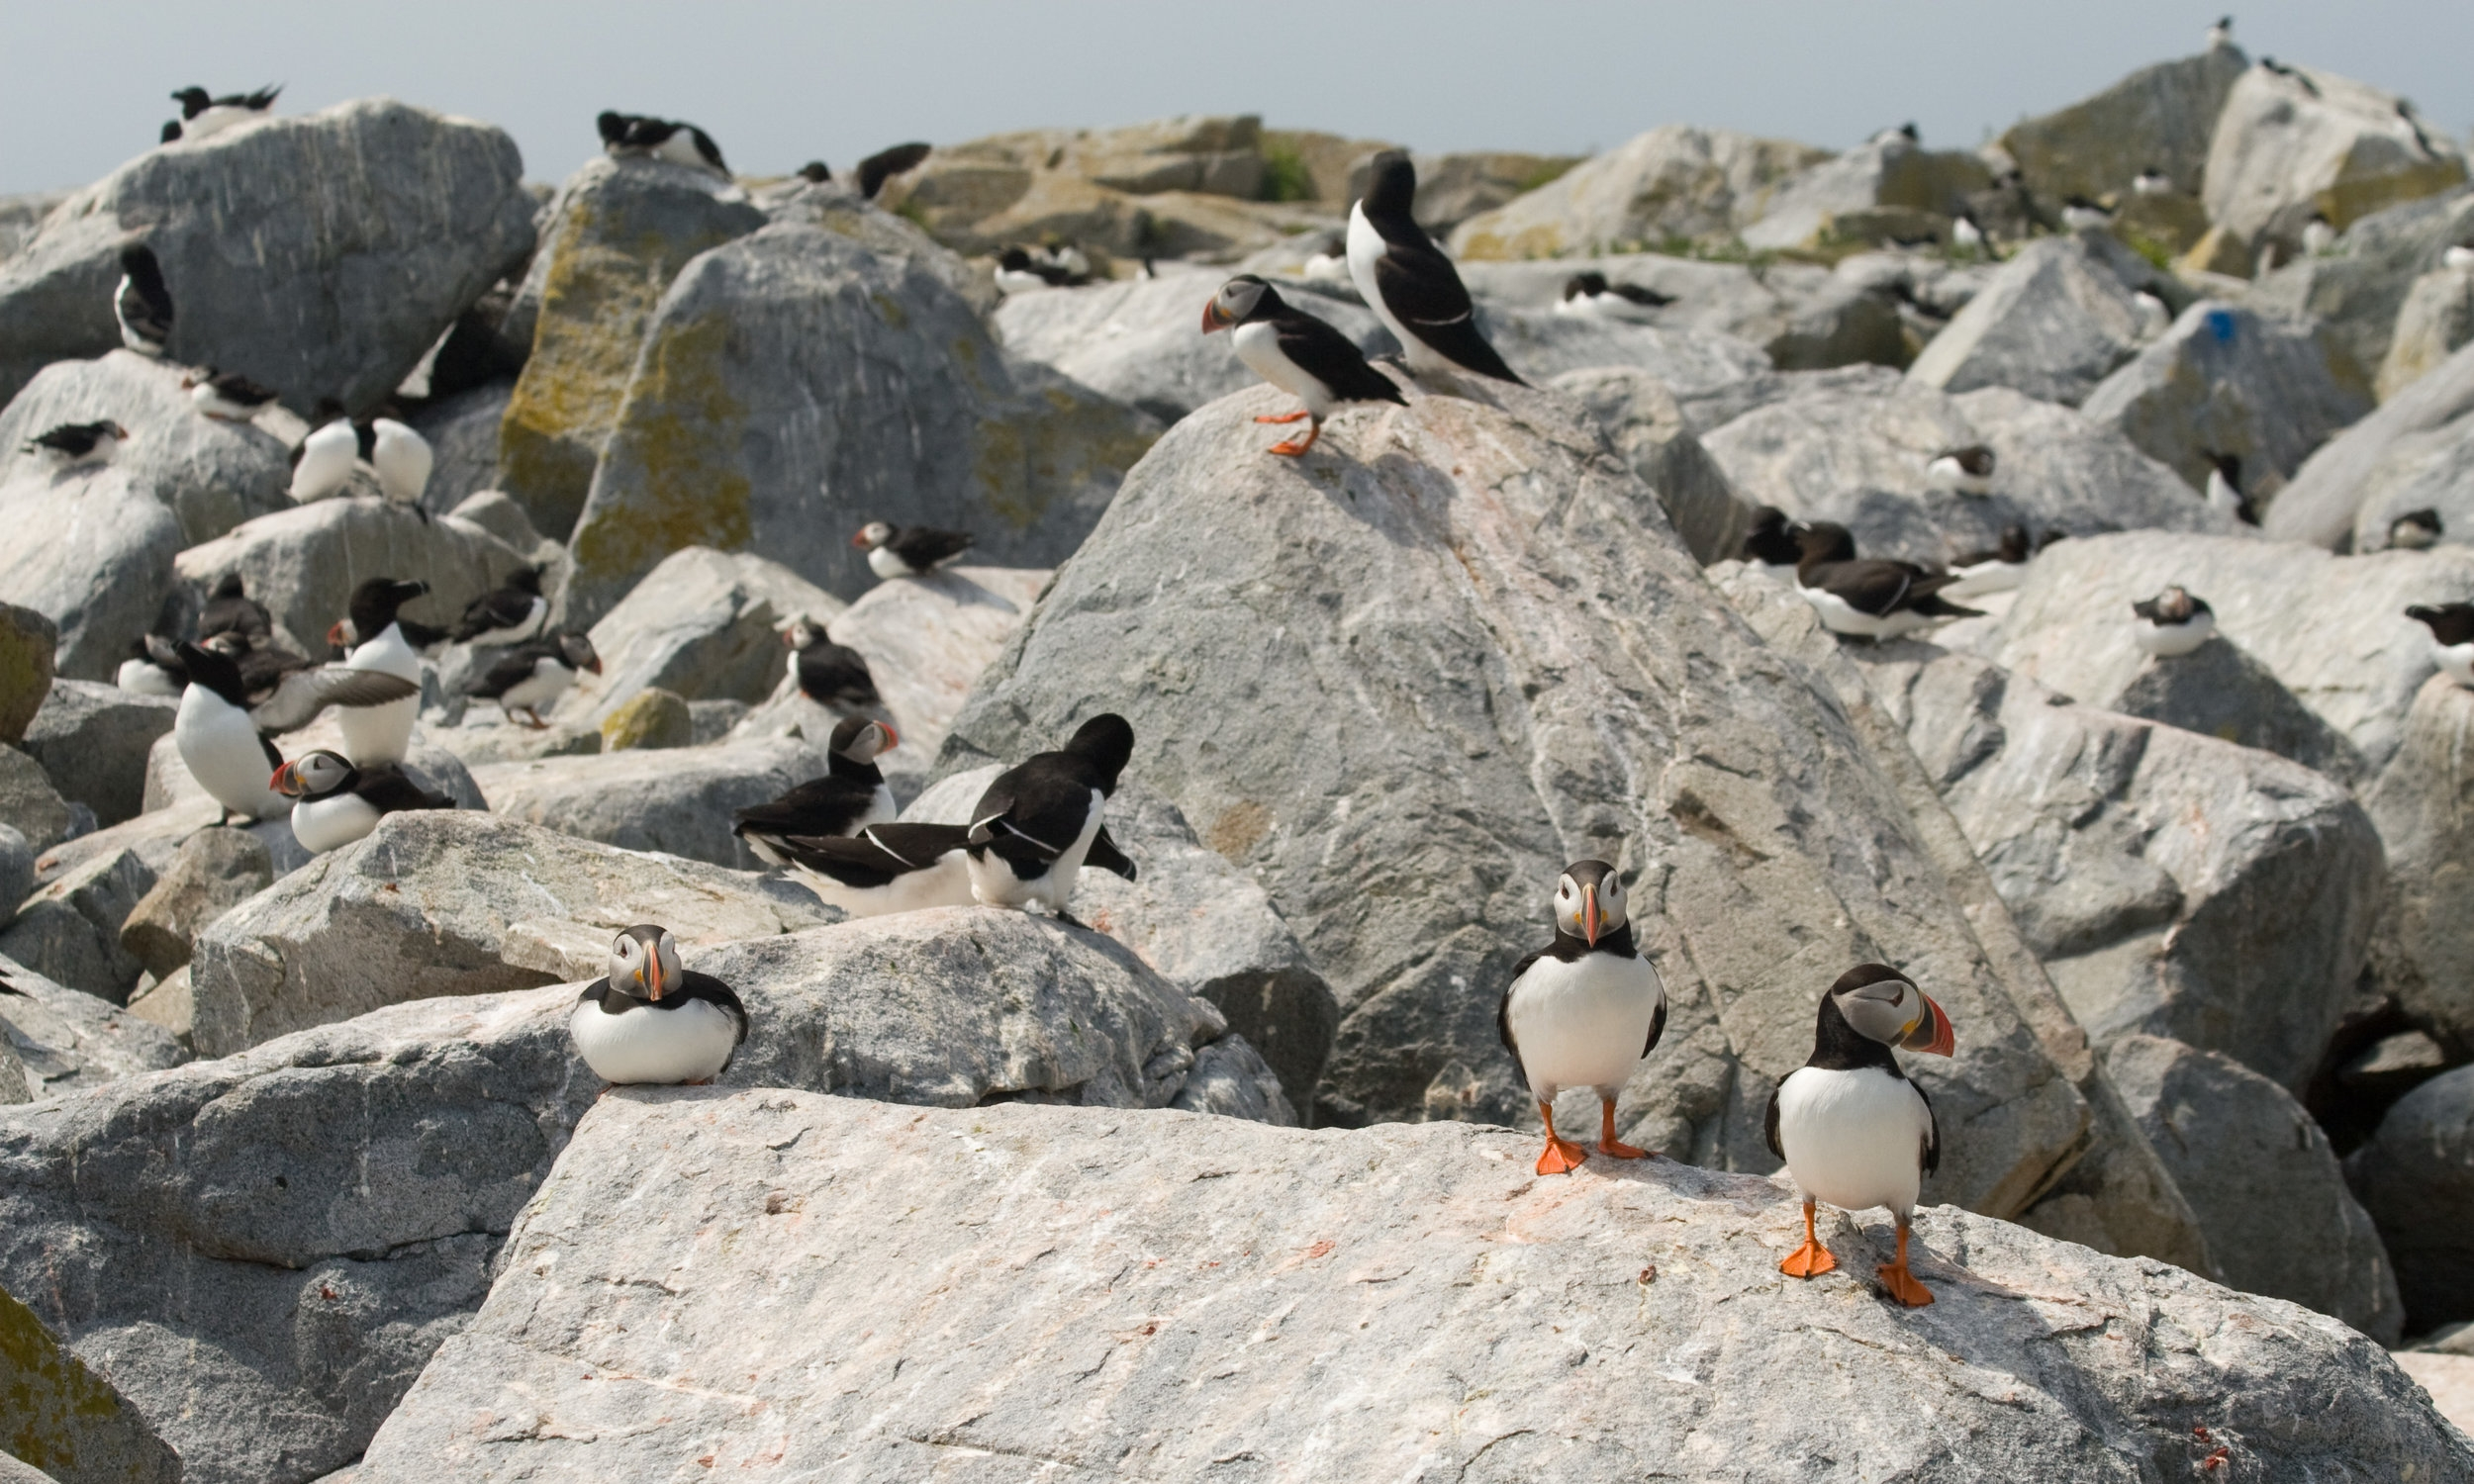 Puffins and Razorbills share the rocky shores of Machias Seal Island.